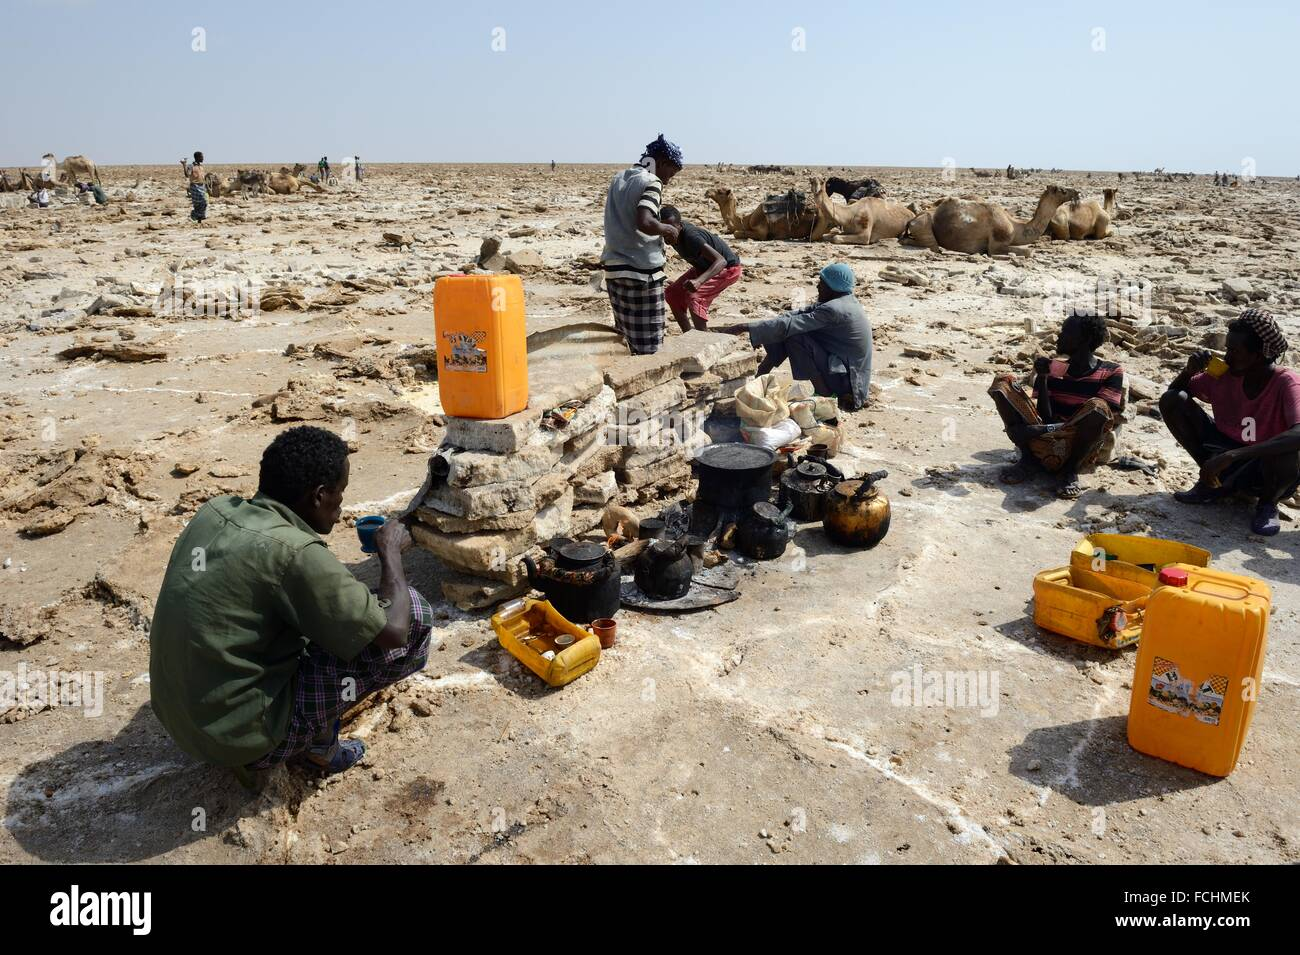 Salt mining at the lake Assale. The workers are having a break with a hot coffe under a burning sun,. - Stock Image